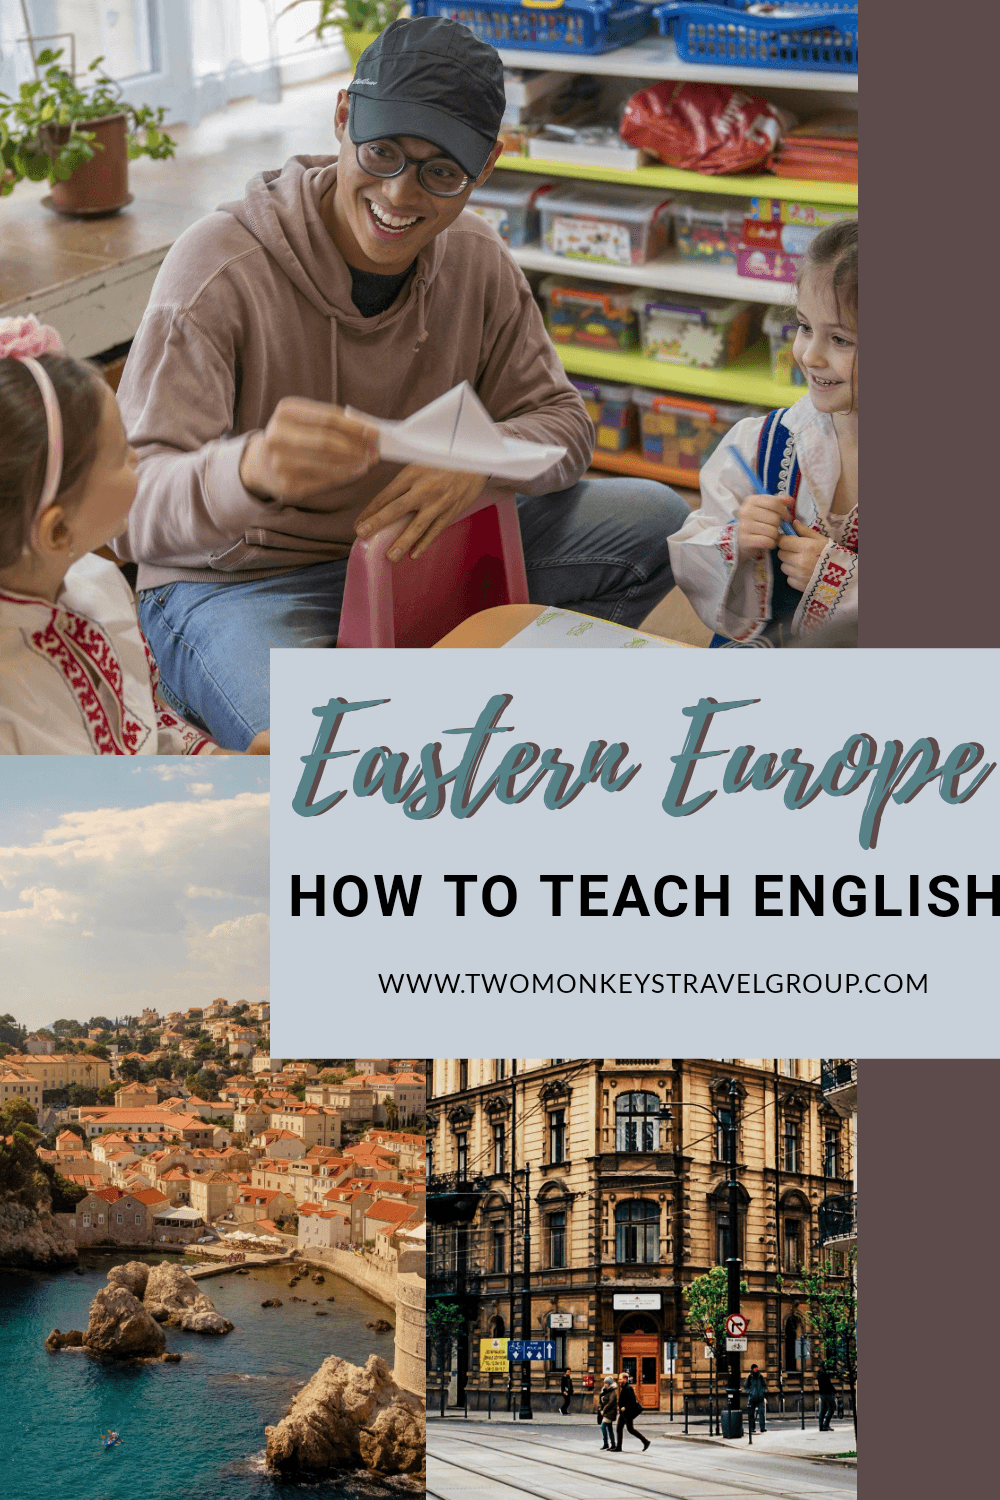 How to Teach English in Eastern Europe – Pros & Cons of Living as an English Teacher